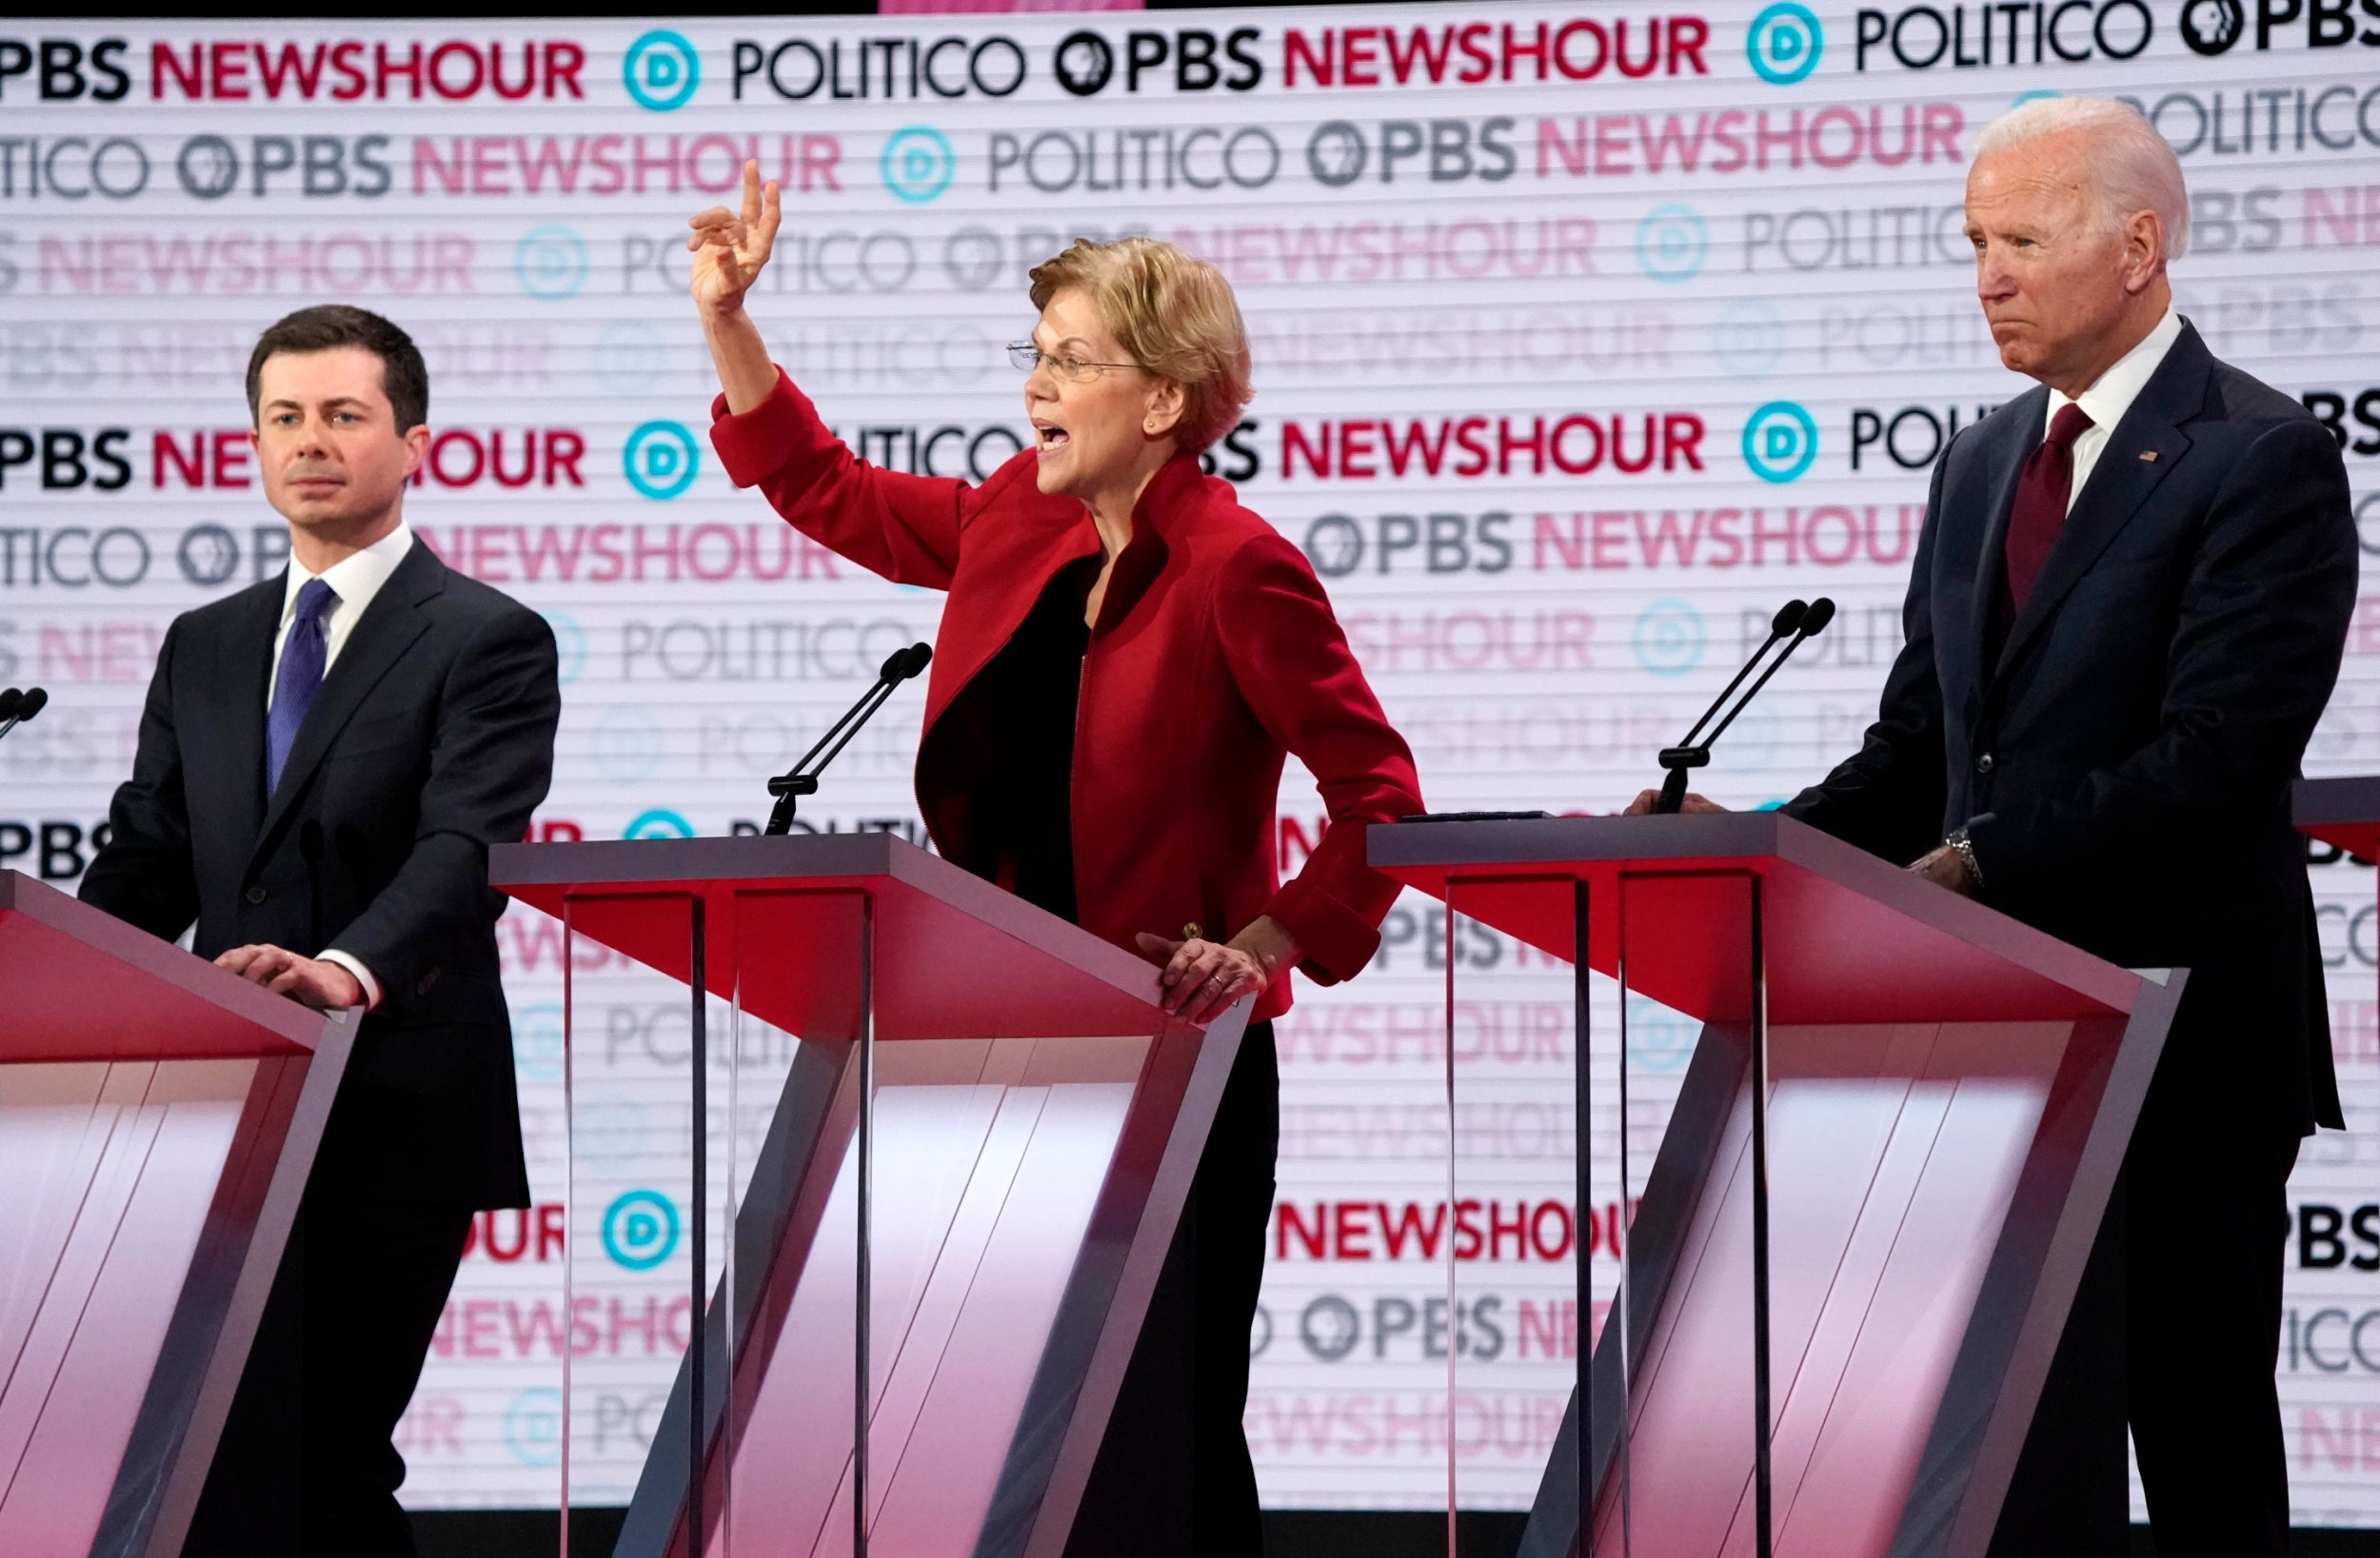 There were a number of winners in December's Democratic debate — but only one clear loser